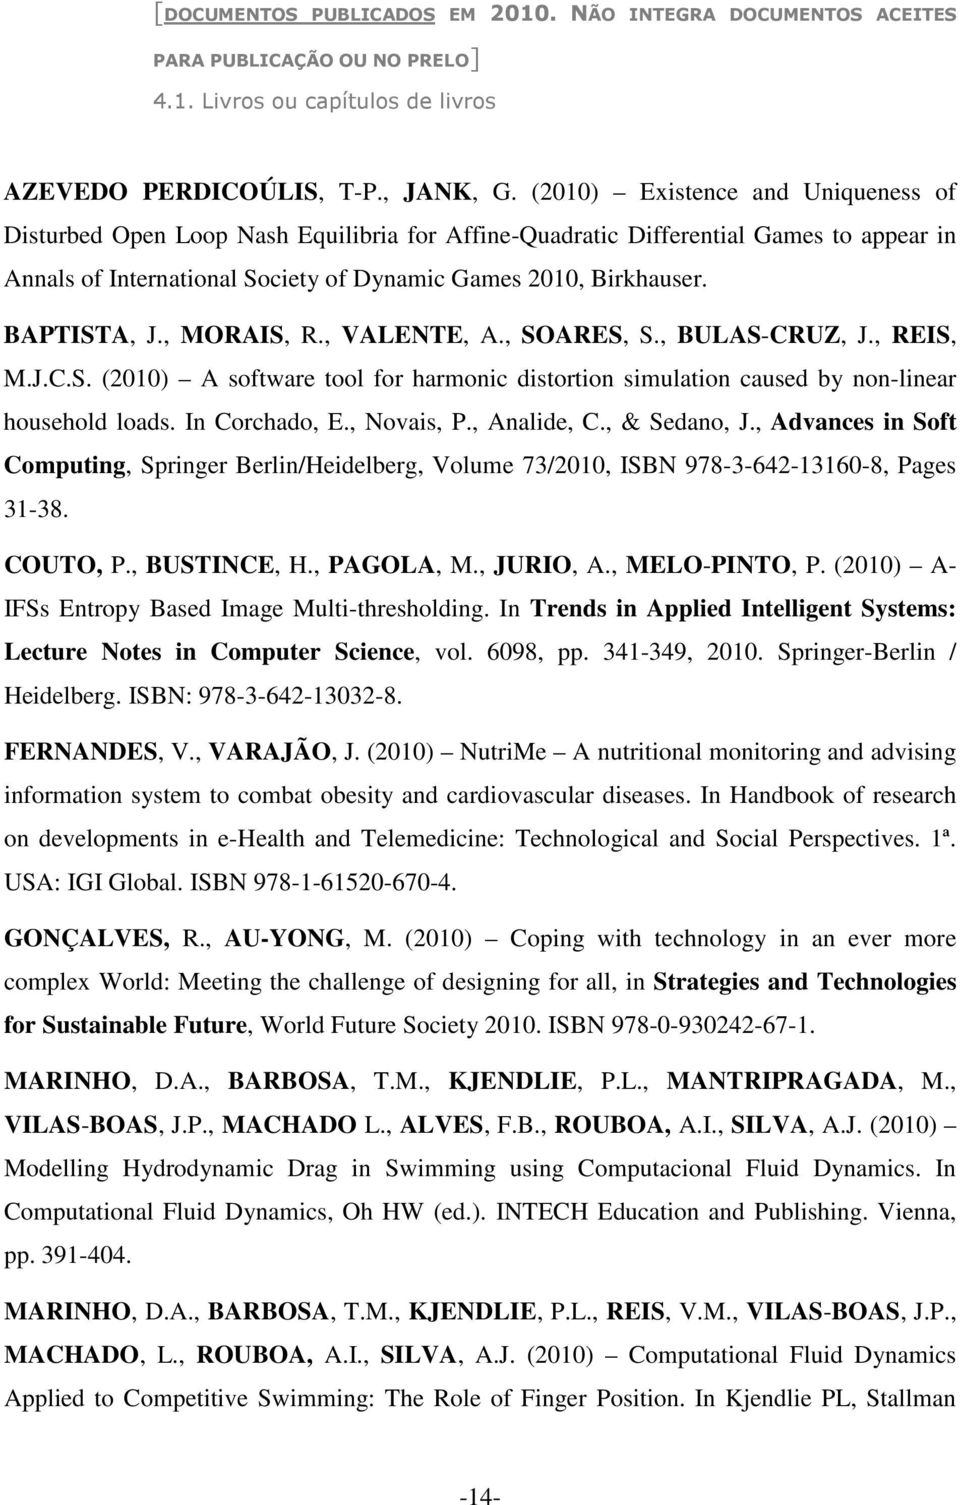 BAPTISTA, J., MORAIS, R., VALENTE, A., SOARES, S., BULAS-CRUZ, J., REIS, M.J.C.S. (2010) A software tool for harmonic distortion simulation caused by non-linear household loads. In Corchado, E.